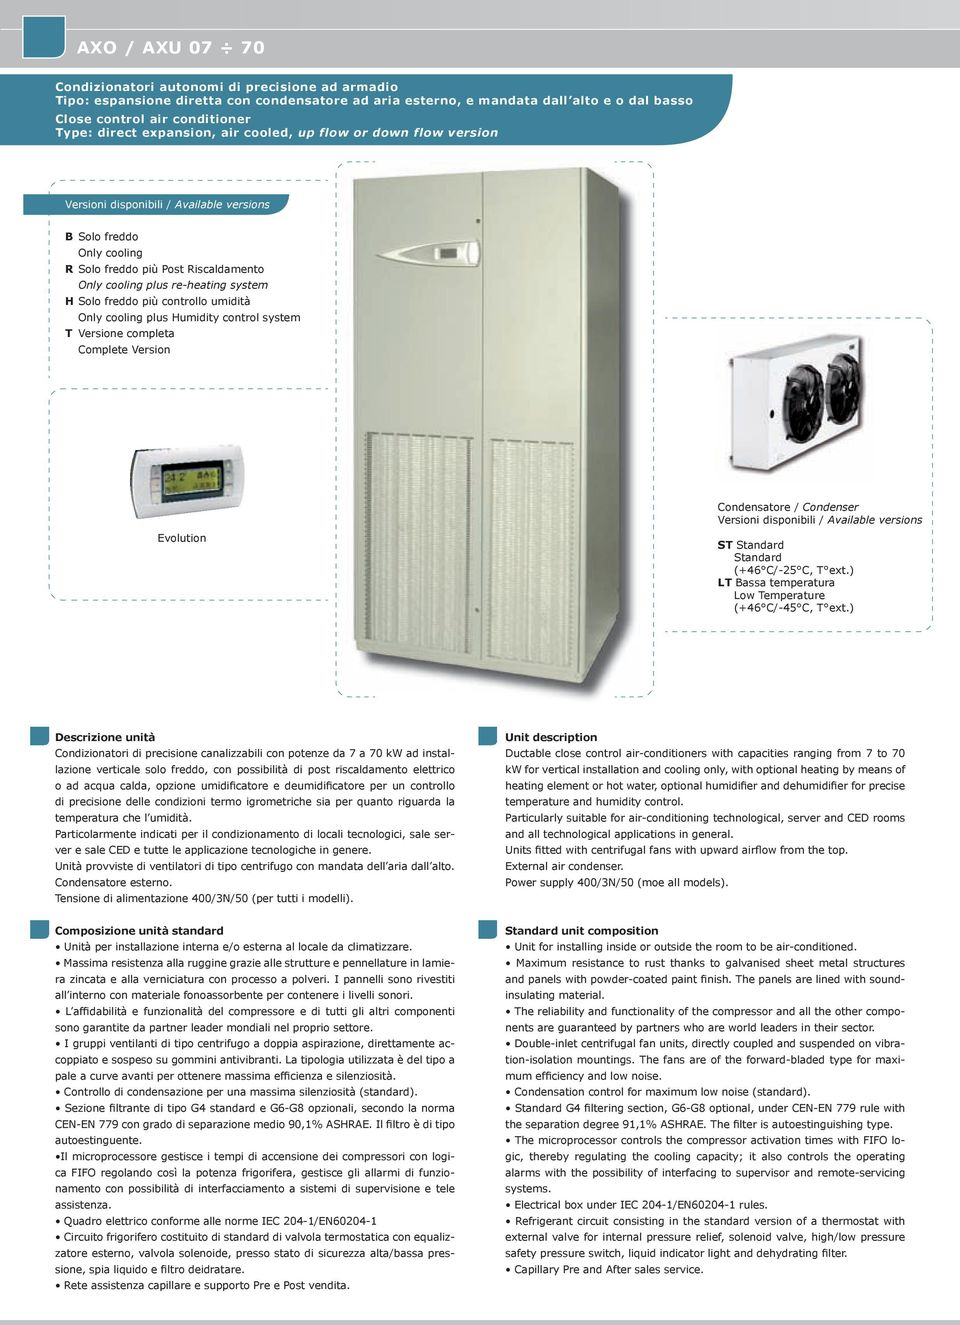 system H Solo freddo più controllo umidità Only cooling plus Humidity control system T Versione completa Complete Version Evolution Condensatore / Condenser Versioni disponibili / Available versions